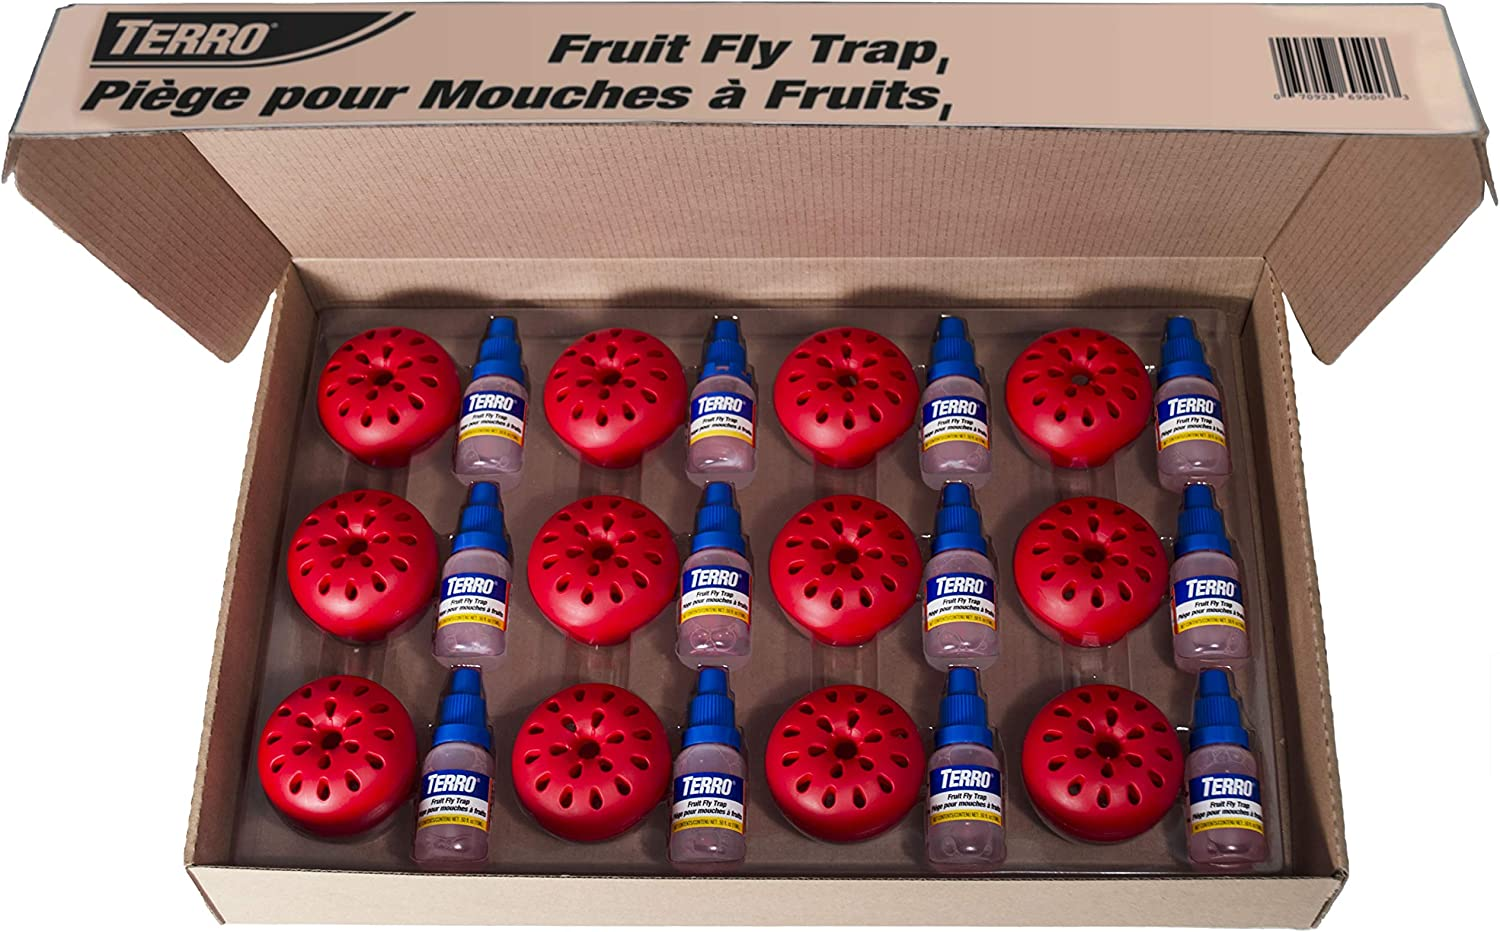 Terro T2512 Fruit Fly Trap-12 Traps, Red